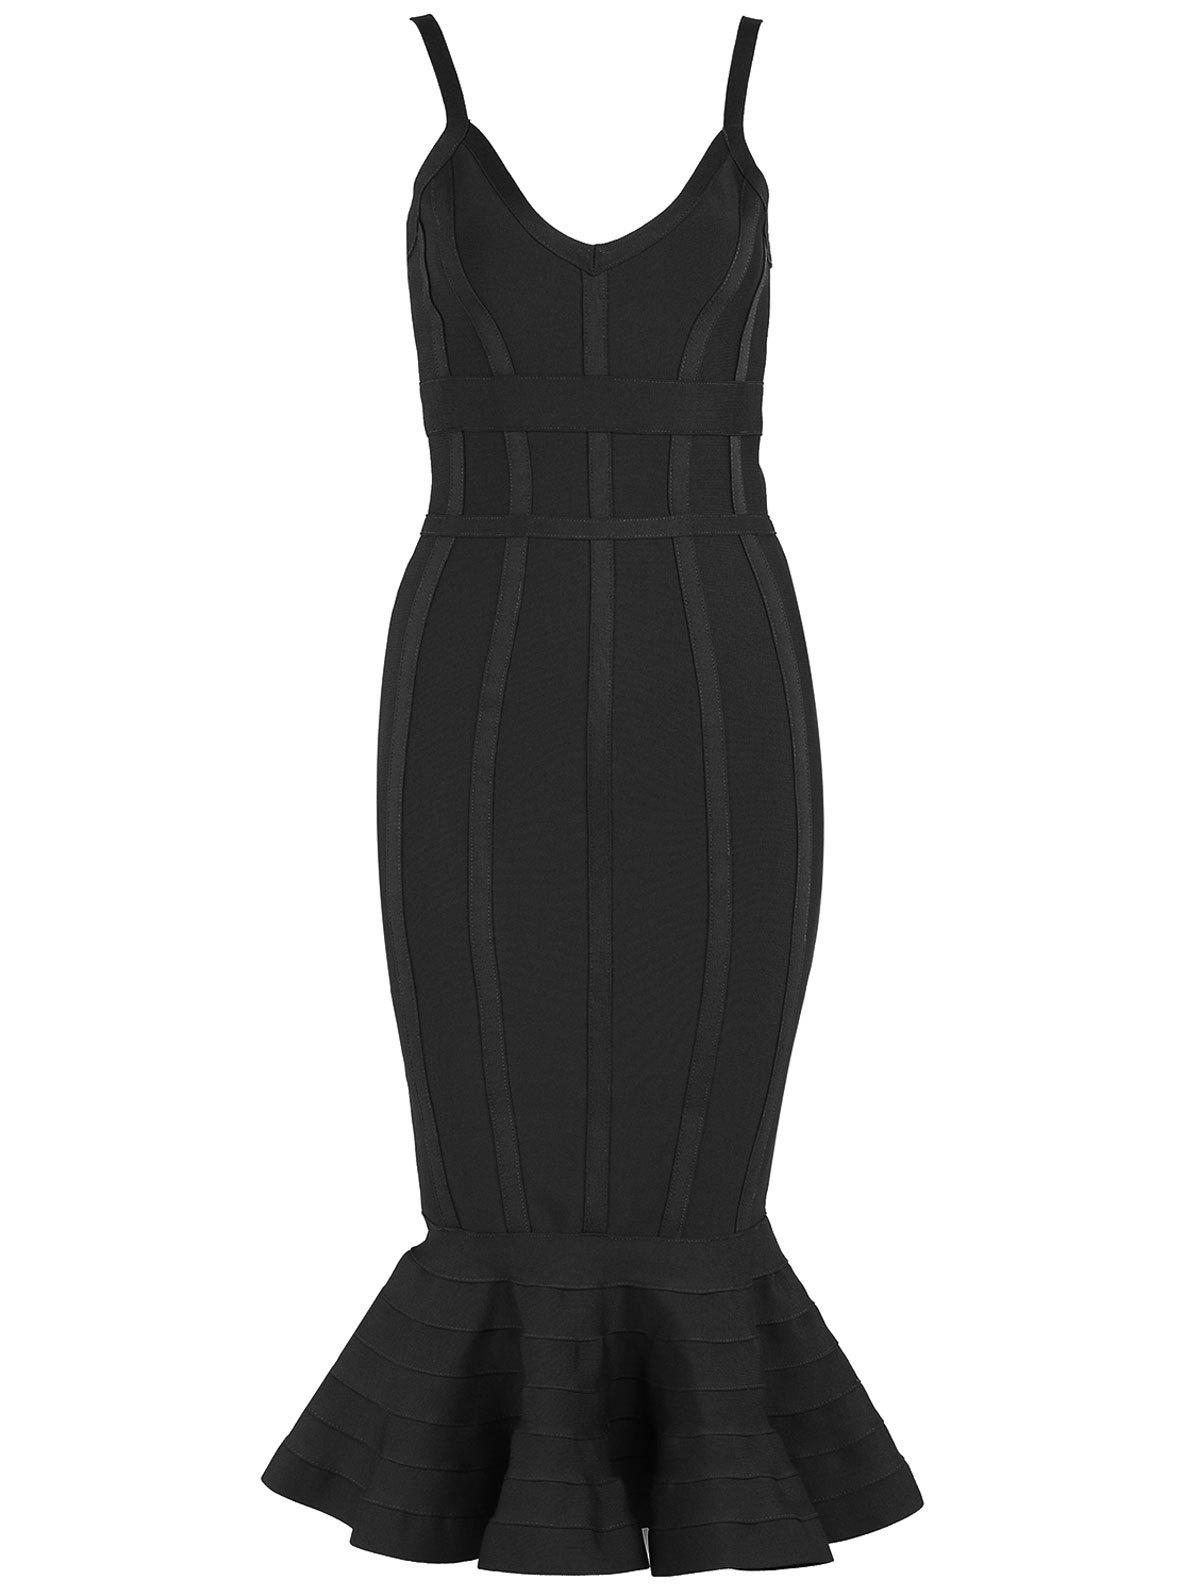 V-neck Mermaid Bodycon Slip Bandage Dress - BLACK M